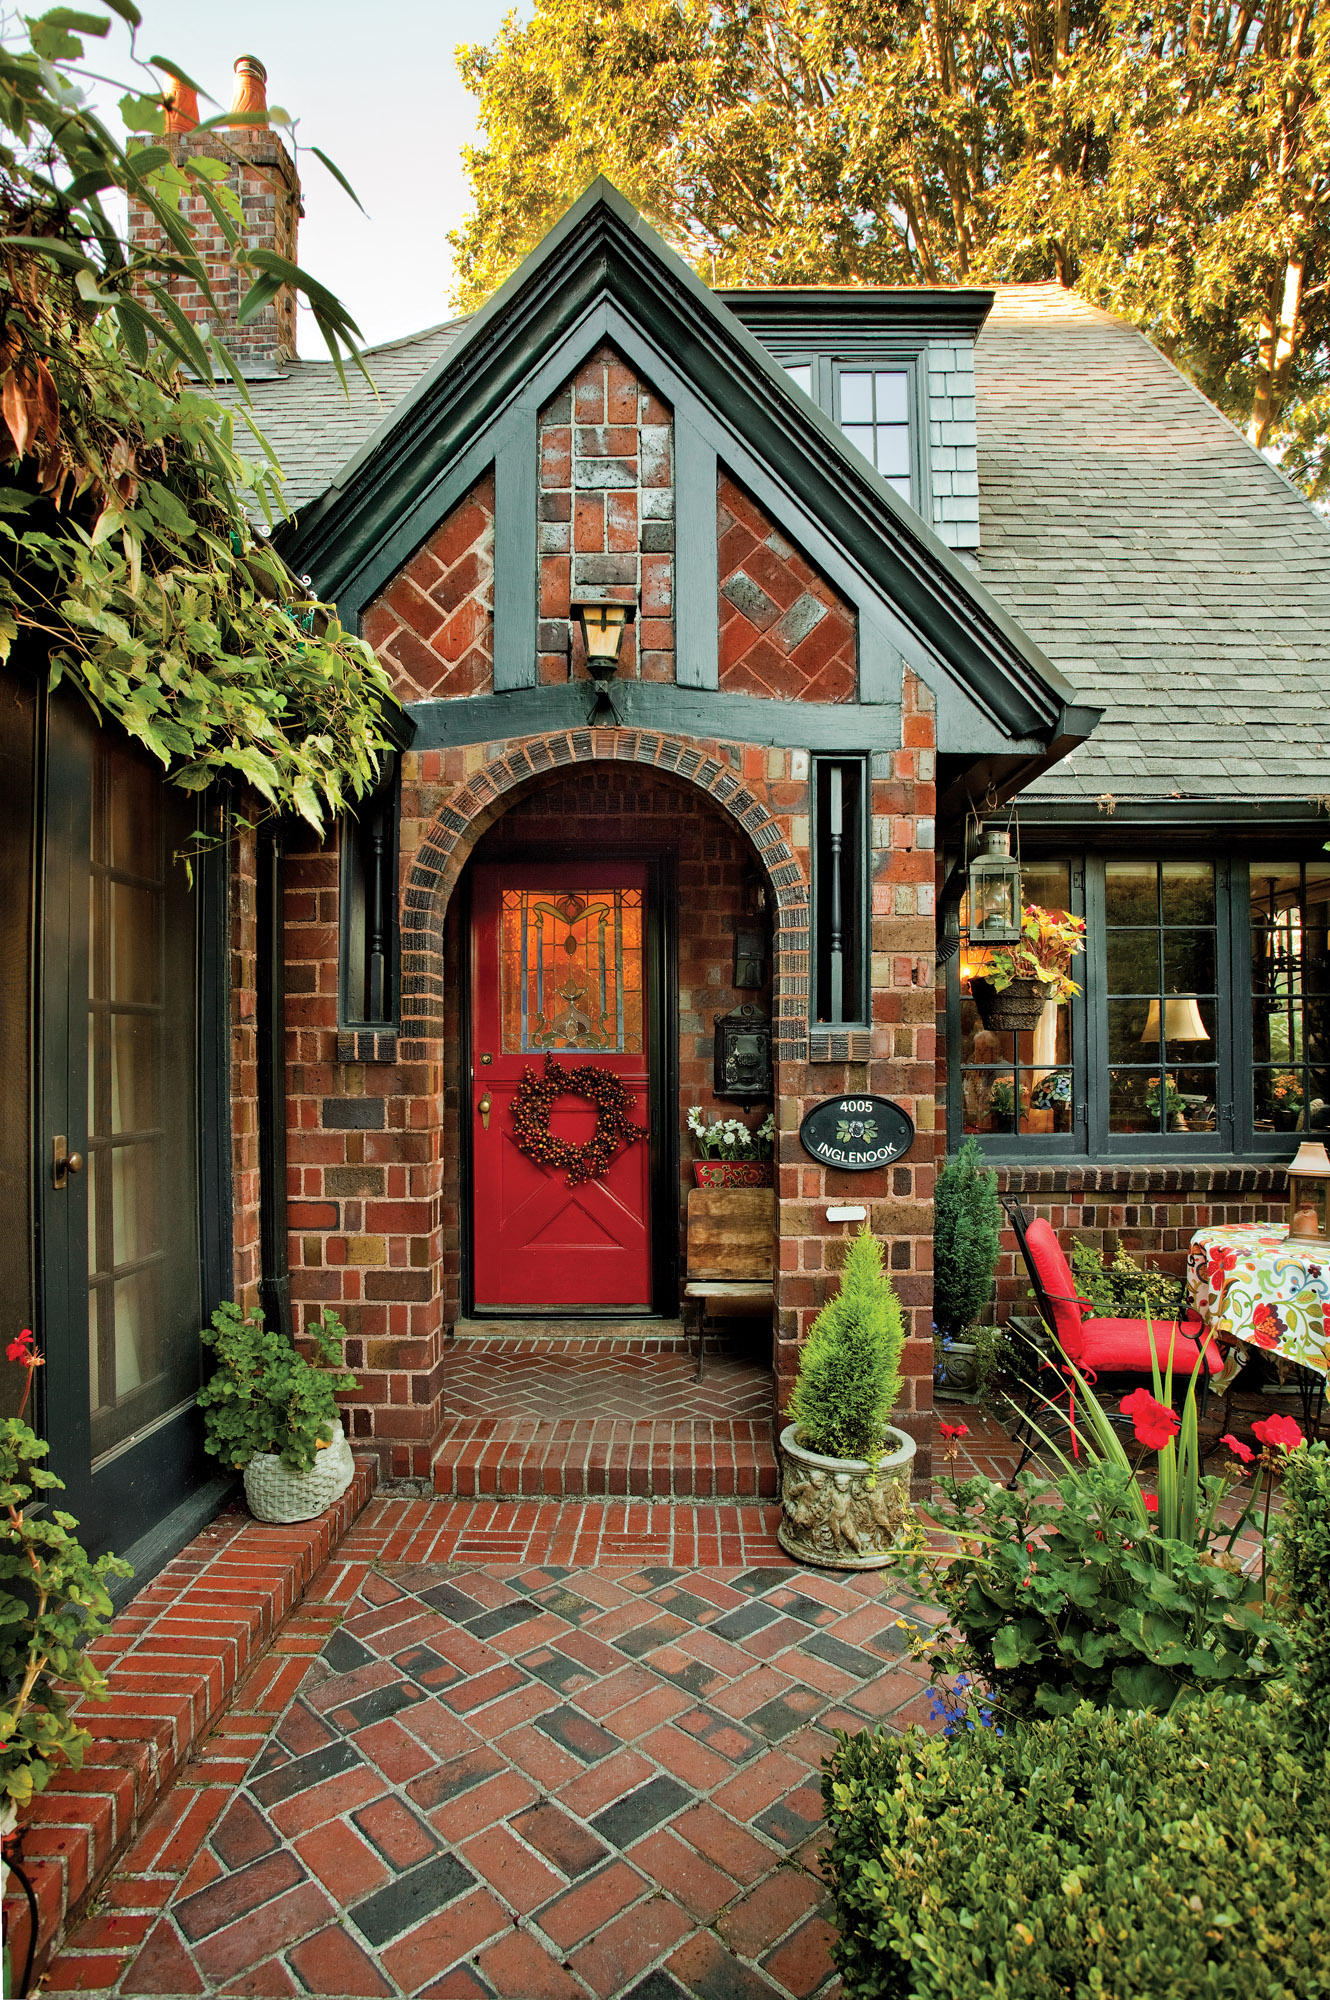 1920s Tudor home, red door, brick home with red door